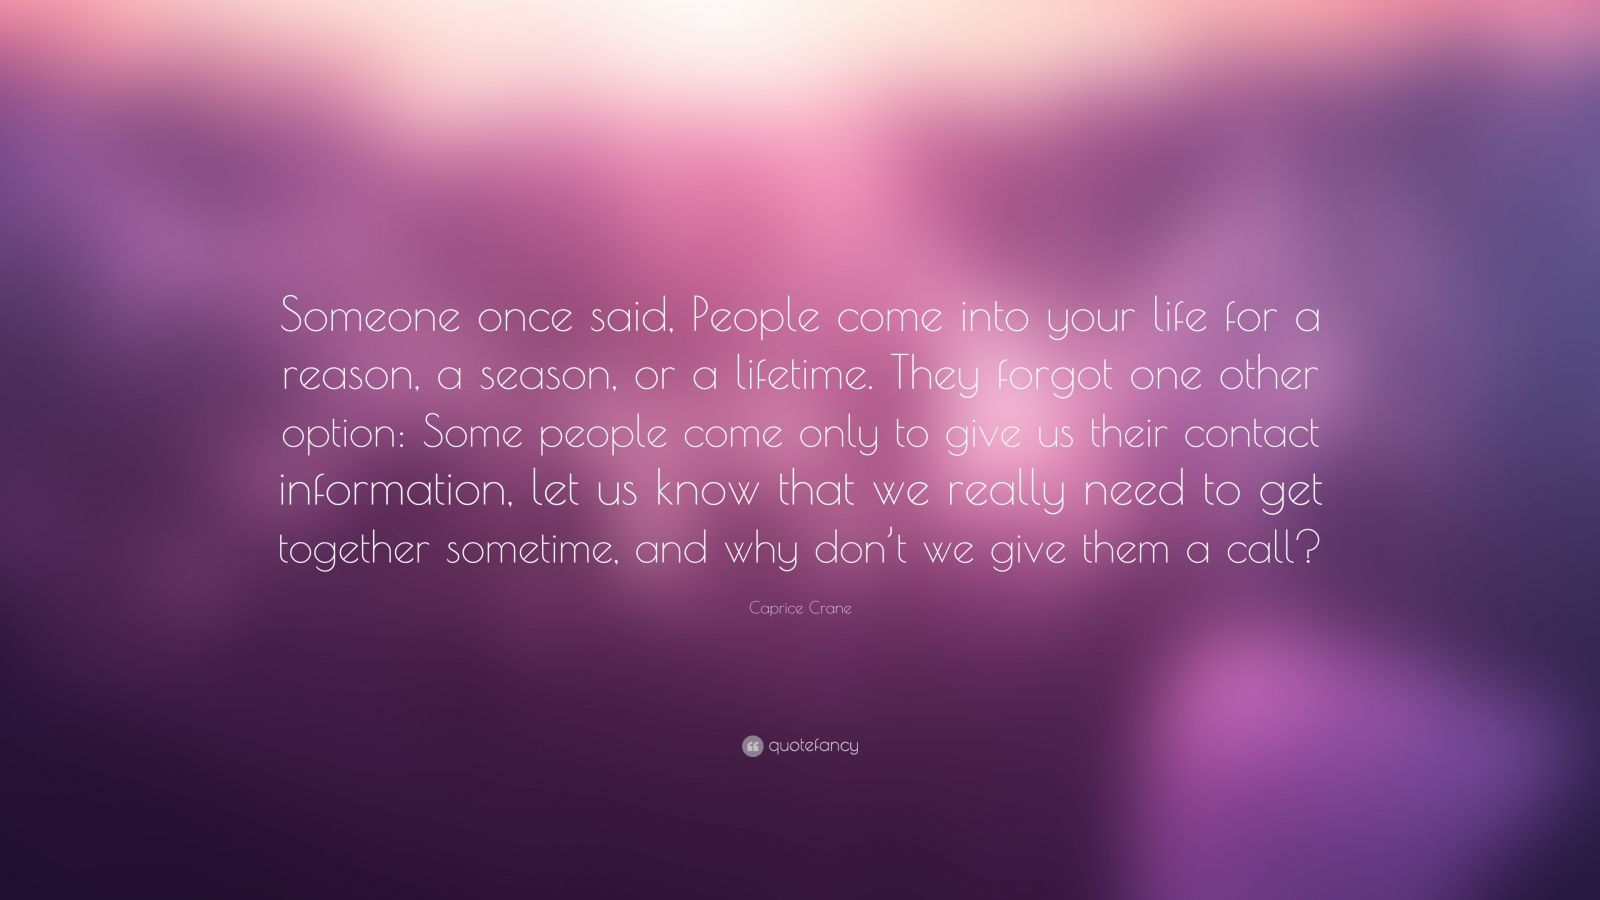 Why People Come Into Your Life